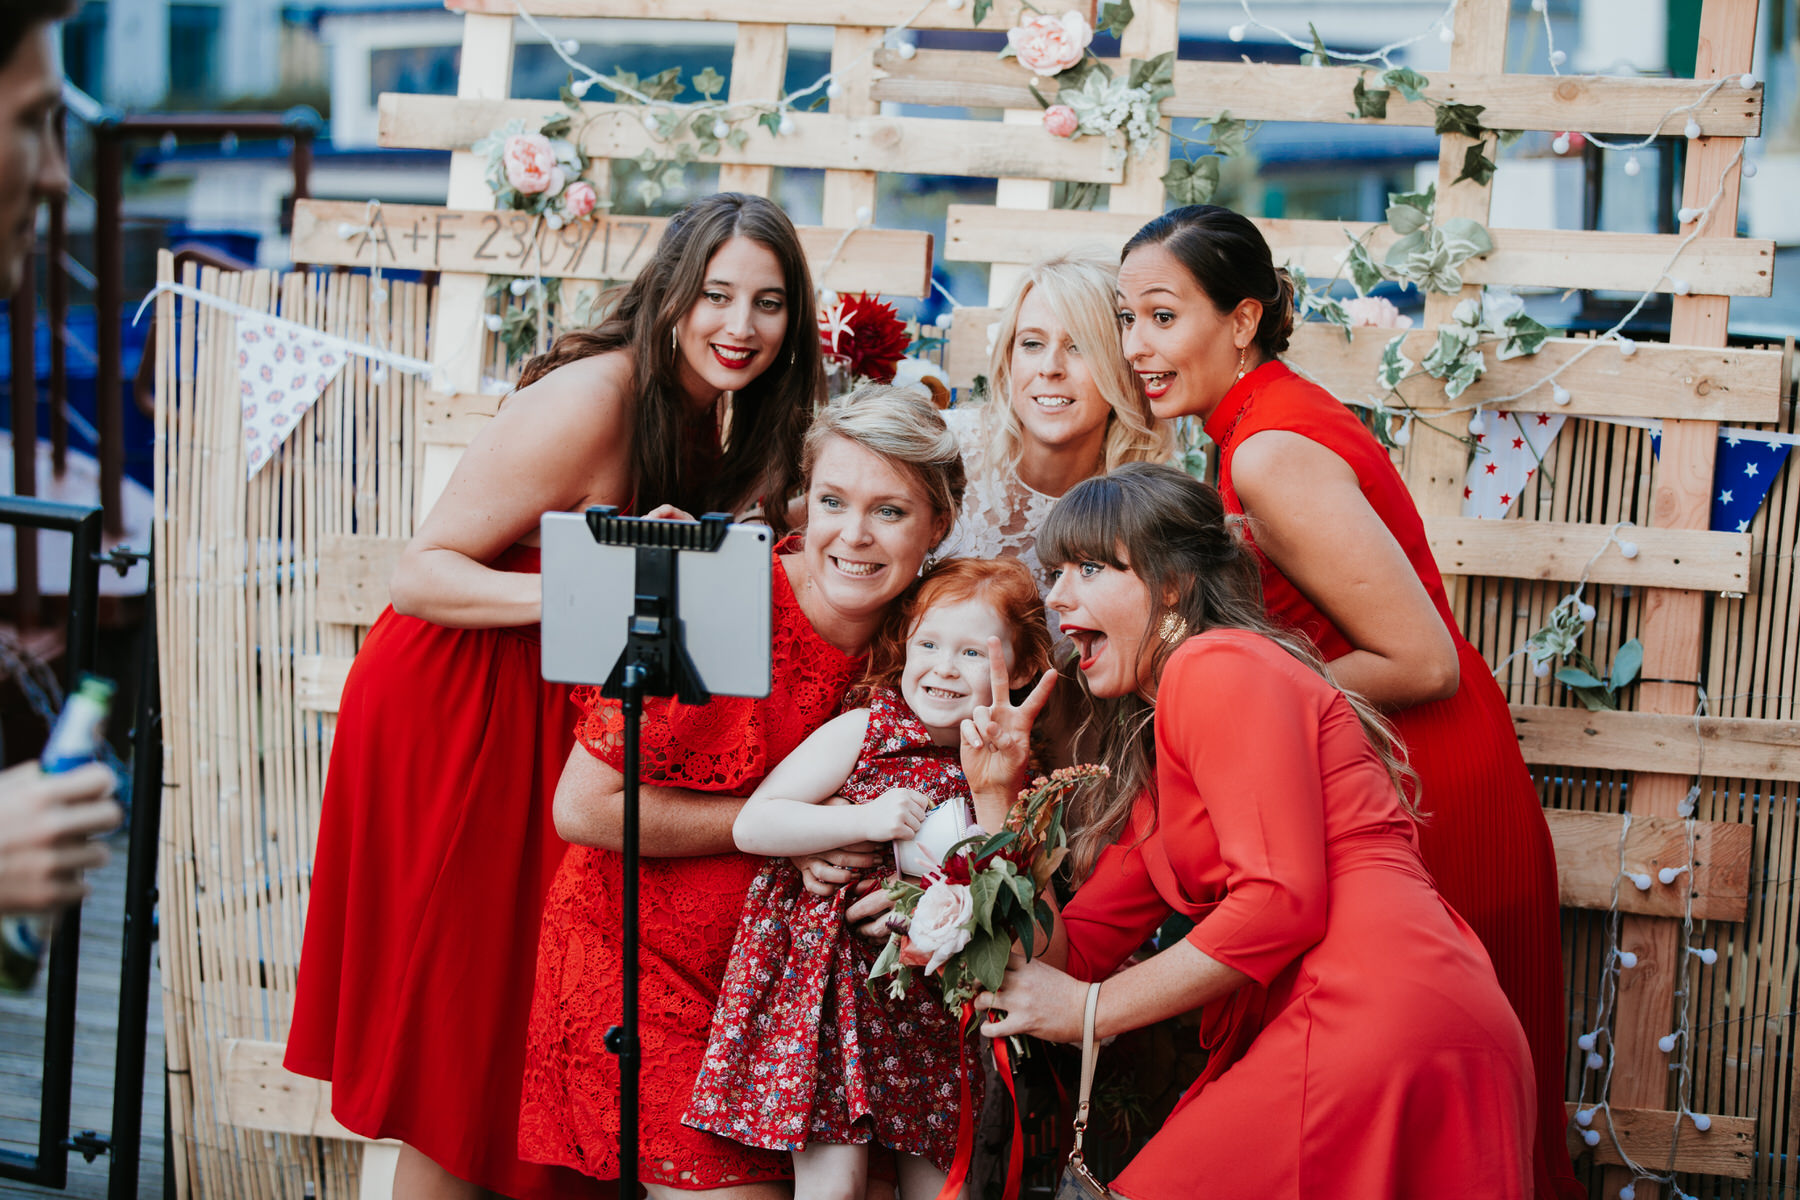 Holborn Studio wedding bridesmaids red dresses selfie time.jpg